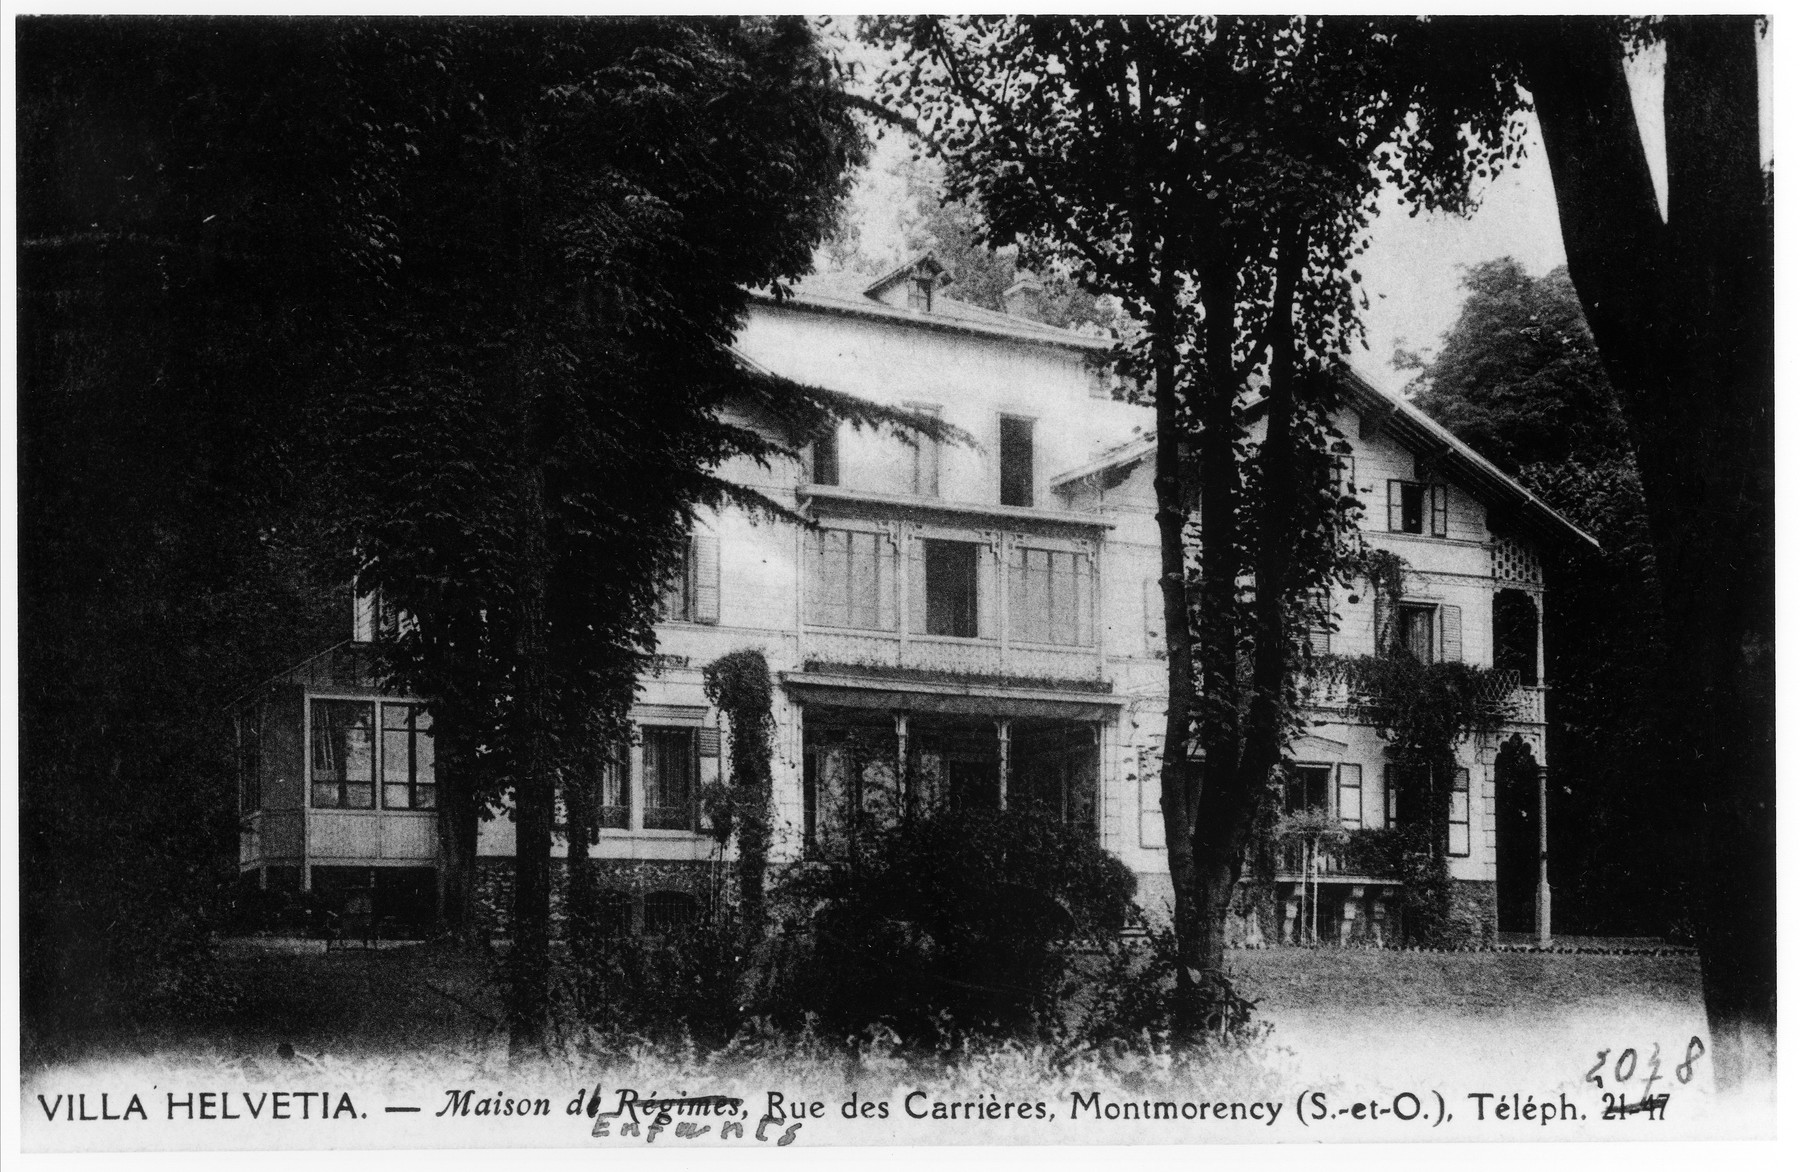 Picture postcard of the Villa Helvetia children's home in Montmorency.